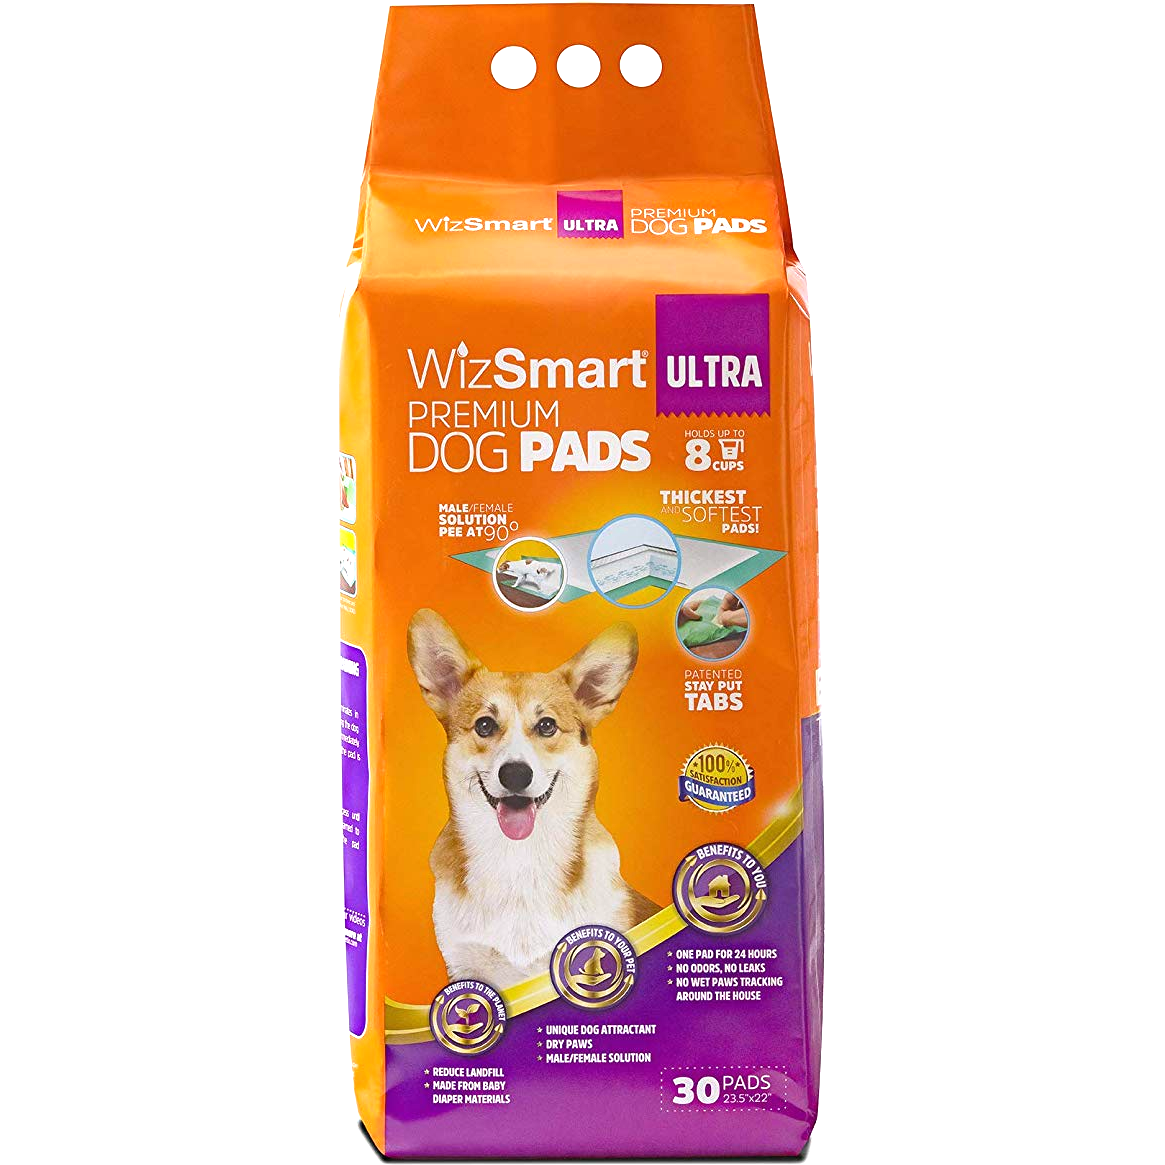 Wizsmart Ultra Dog Pad, 30-count